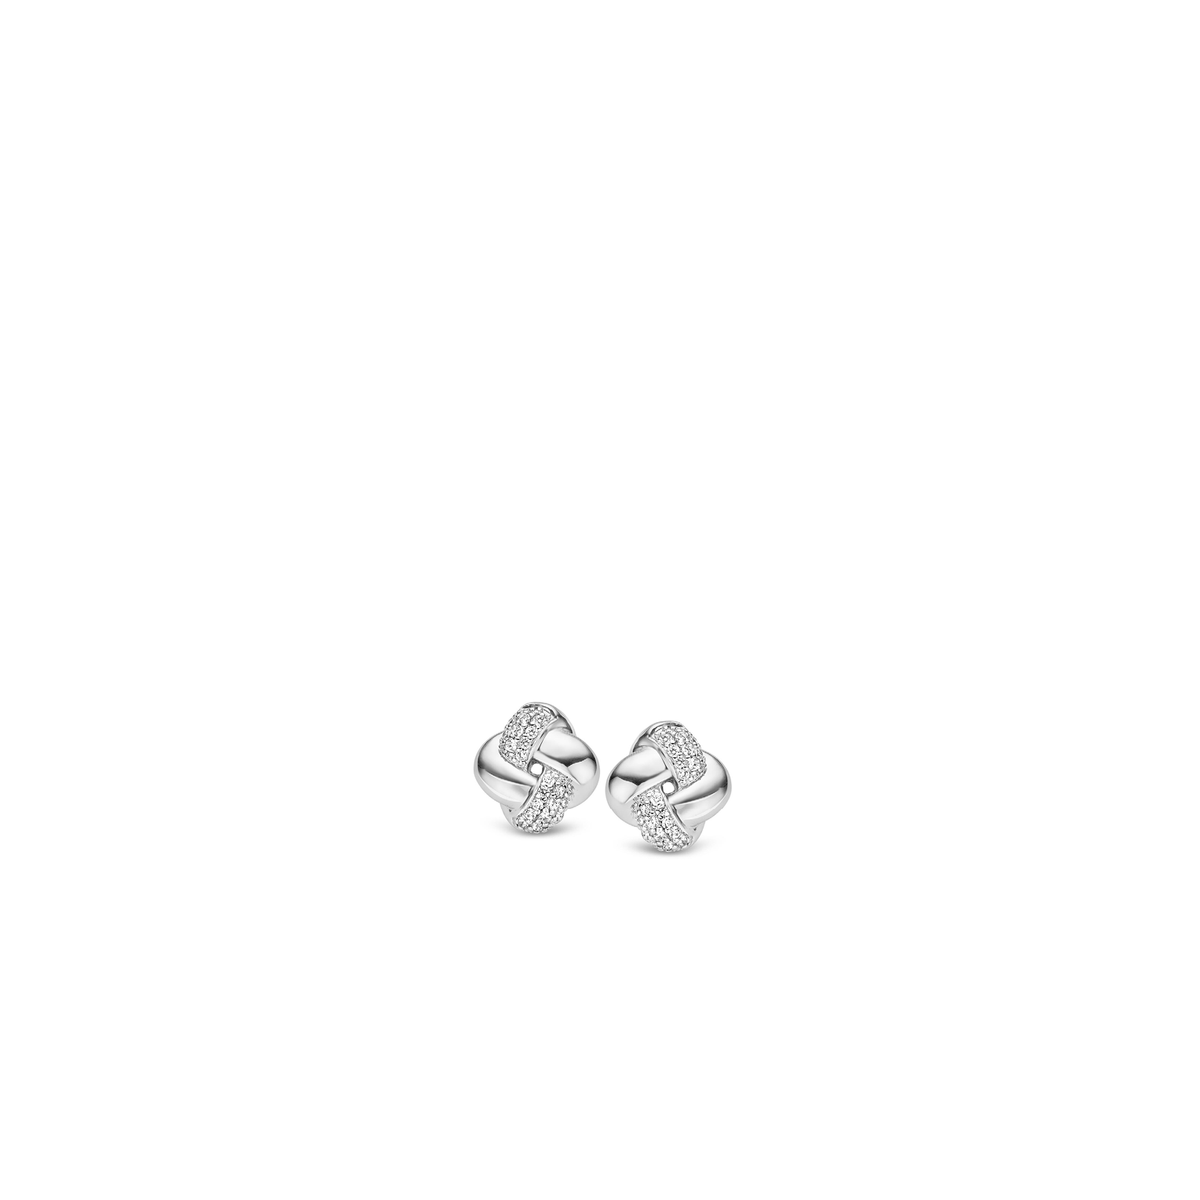 TI SENTO - Milano Earrings 7704ZI